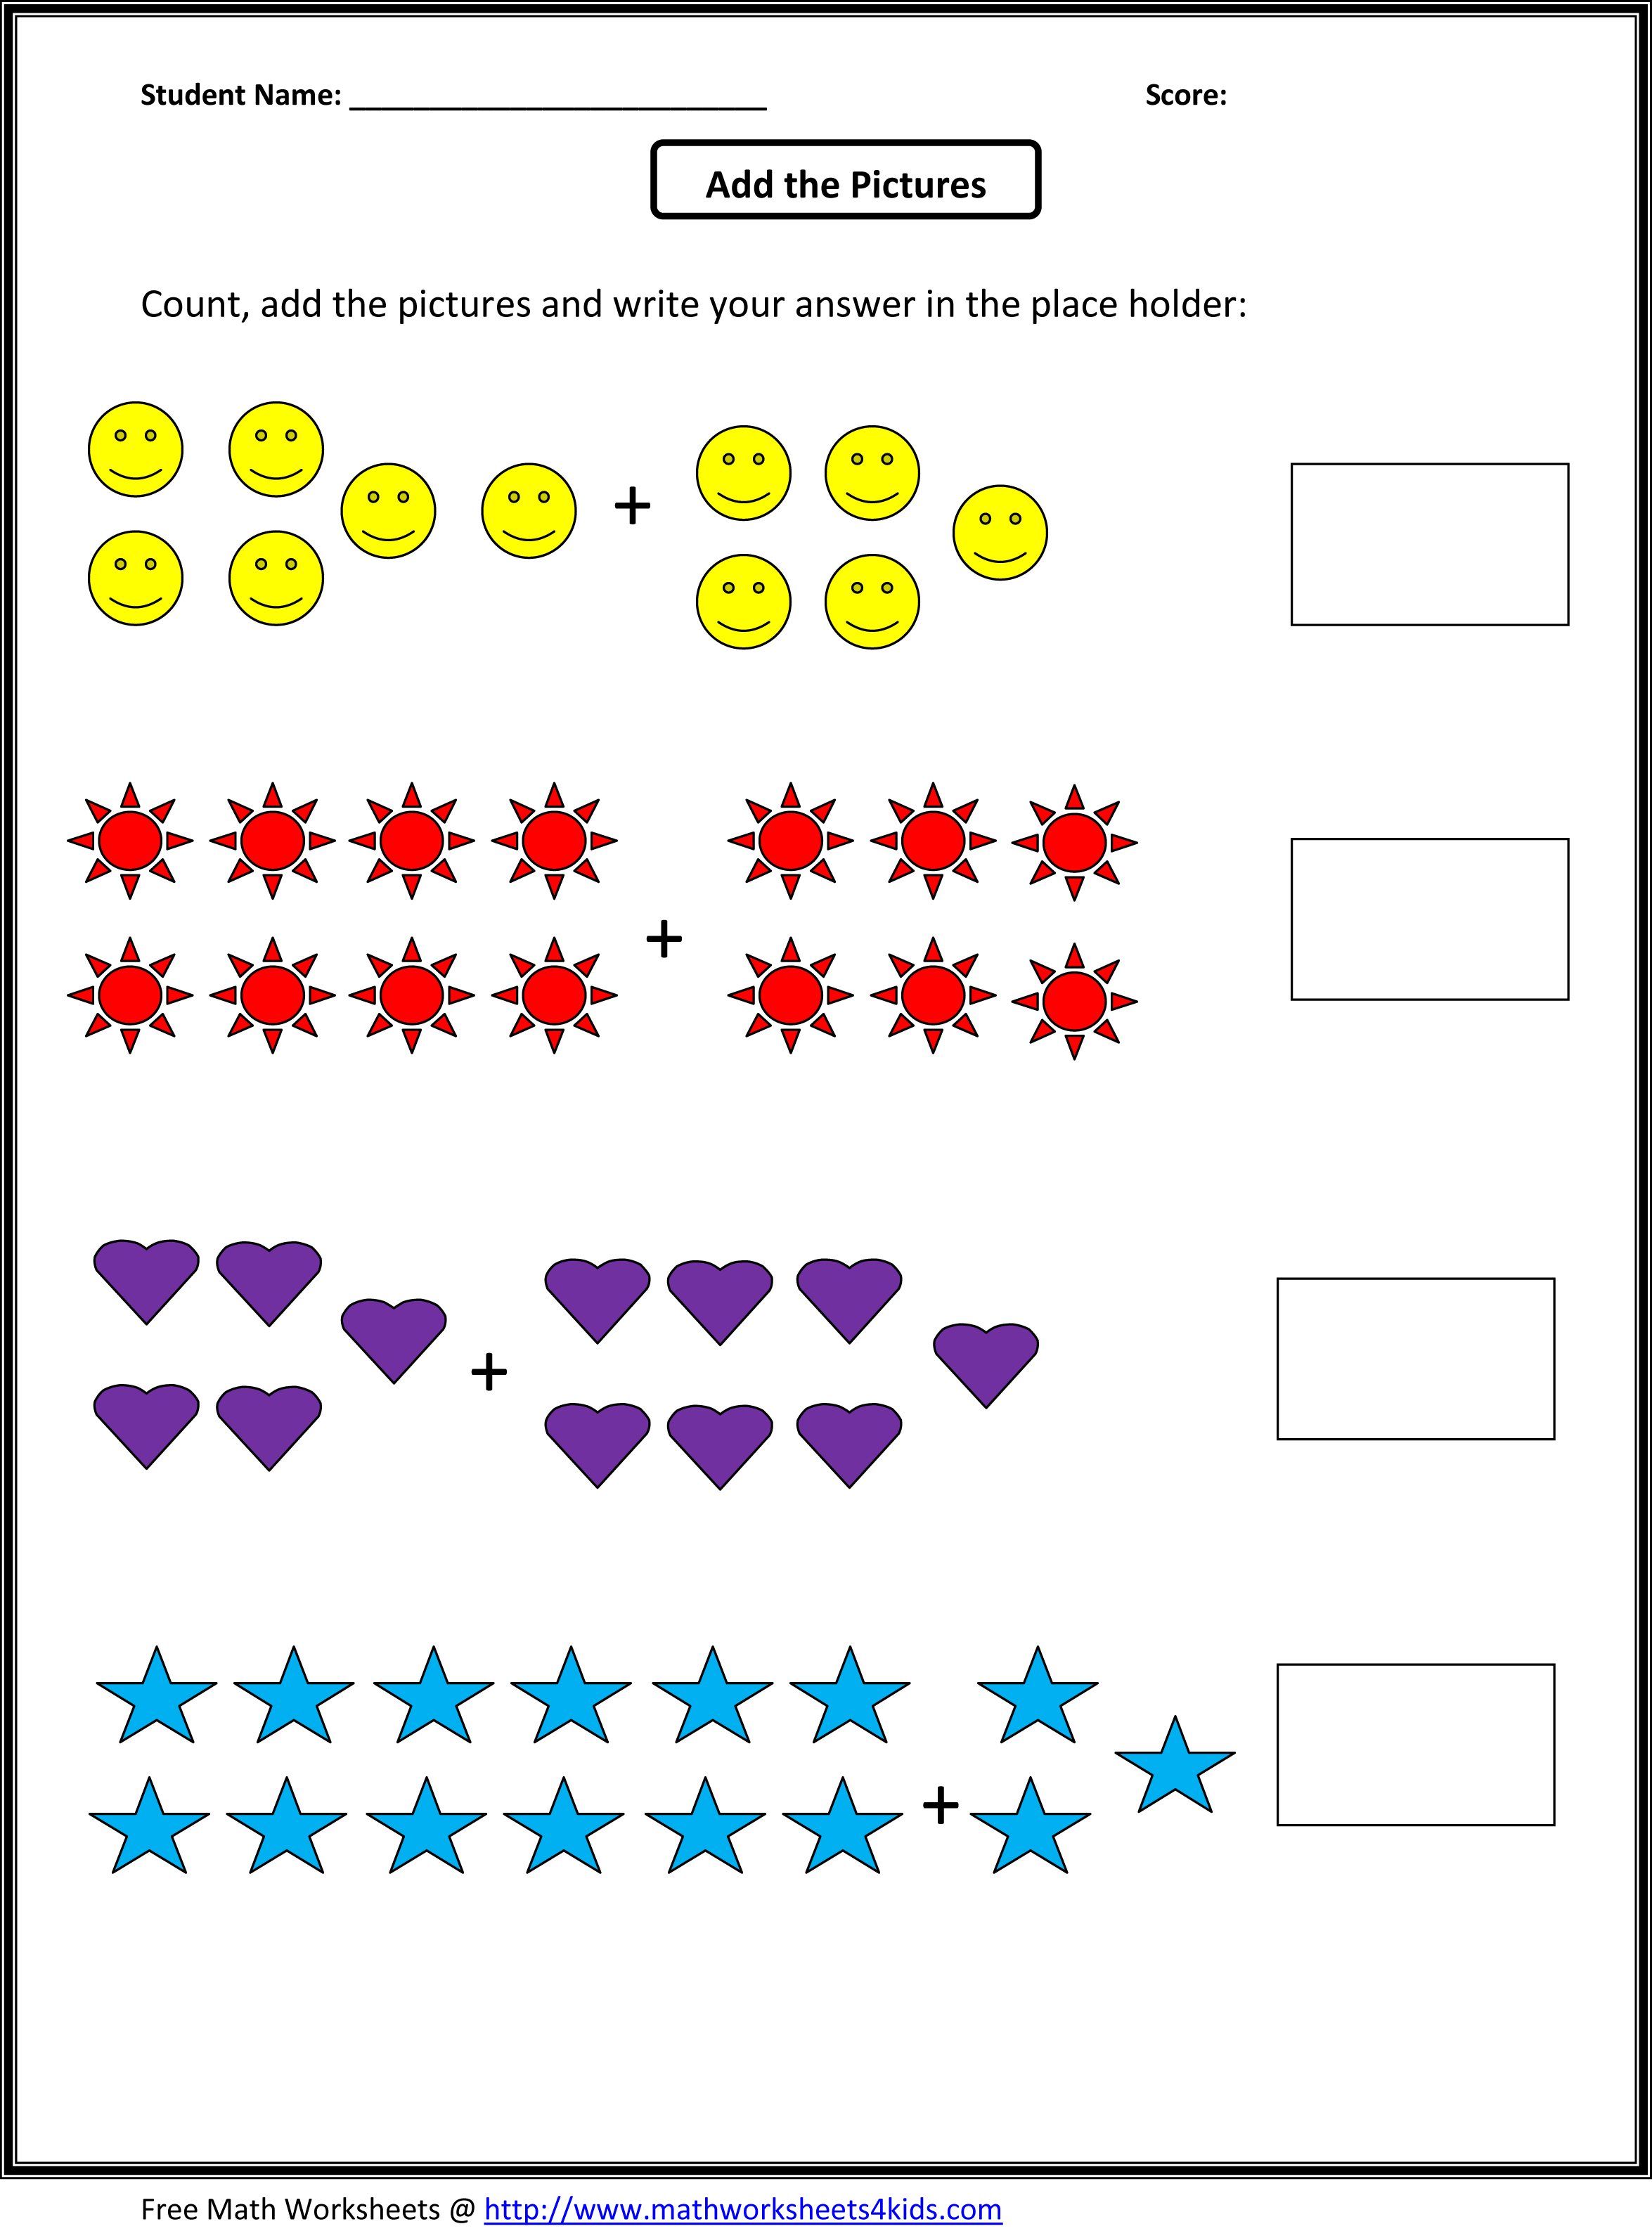 Weirdmailus  Gorgeous Grade  Maths Worksheet  Reocurent With Hot Math Worksheets For St Grade Free  Reocurent With Appealing Number Of Allowances From The Estimated Deductions Worksheet B Also Time Tables Worksheets In Addition Organelles In Eukaryotic Cells Worksheet And Rd Grade Fraction Worksheets As Well As Dividing Polynomials Worksheet Answers Additionally Two Step Equation Worksheets From Reocurentcom With Weirdmailus  Hot Grade  Maths Worksheet  Reocurent With Appealing Math Worksheets For St Grade Free  Reocurent And Gorgeous Number Of Allowances From The Estimated Deductions Worksheet B Also Time Tables Worksheets In Addition Organelles In Eukaryotic Cells Worksheet From Reocurentcom